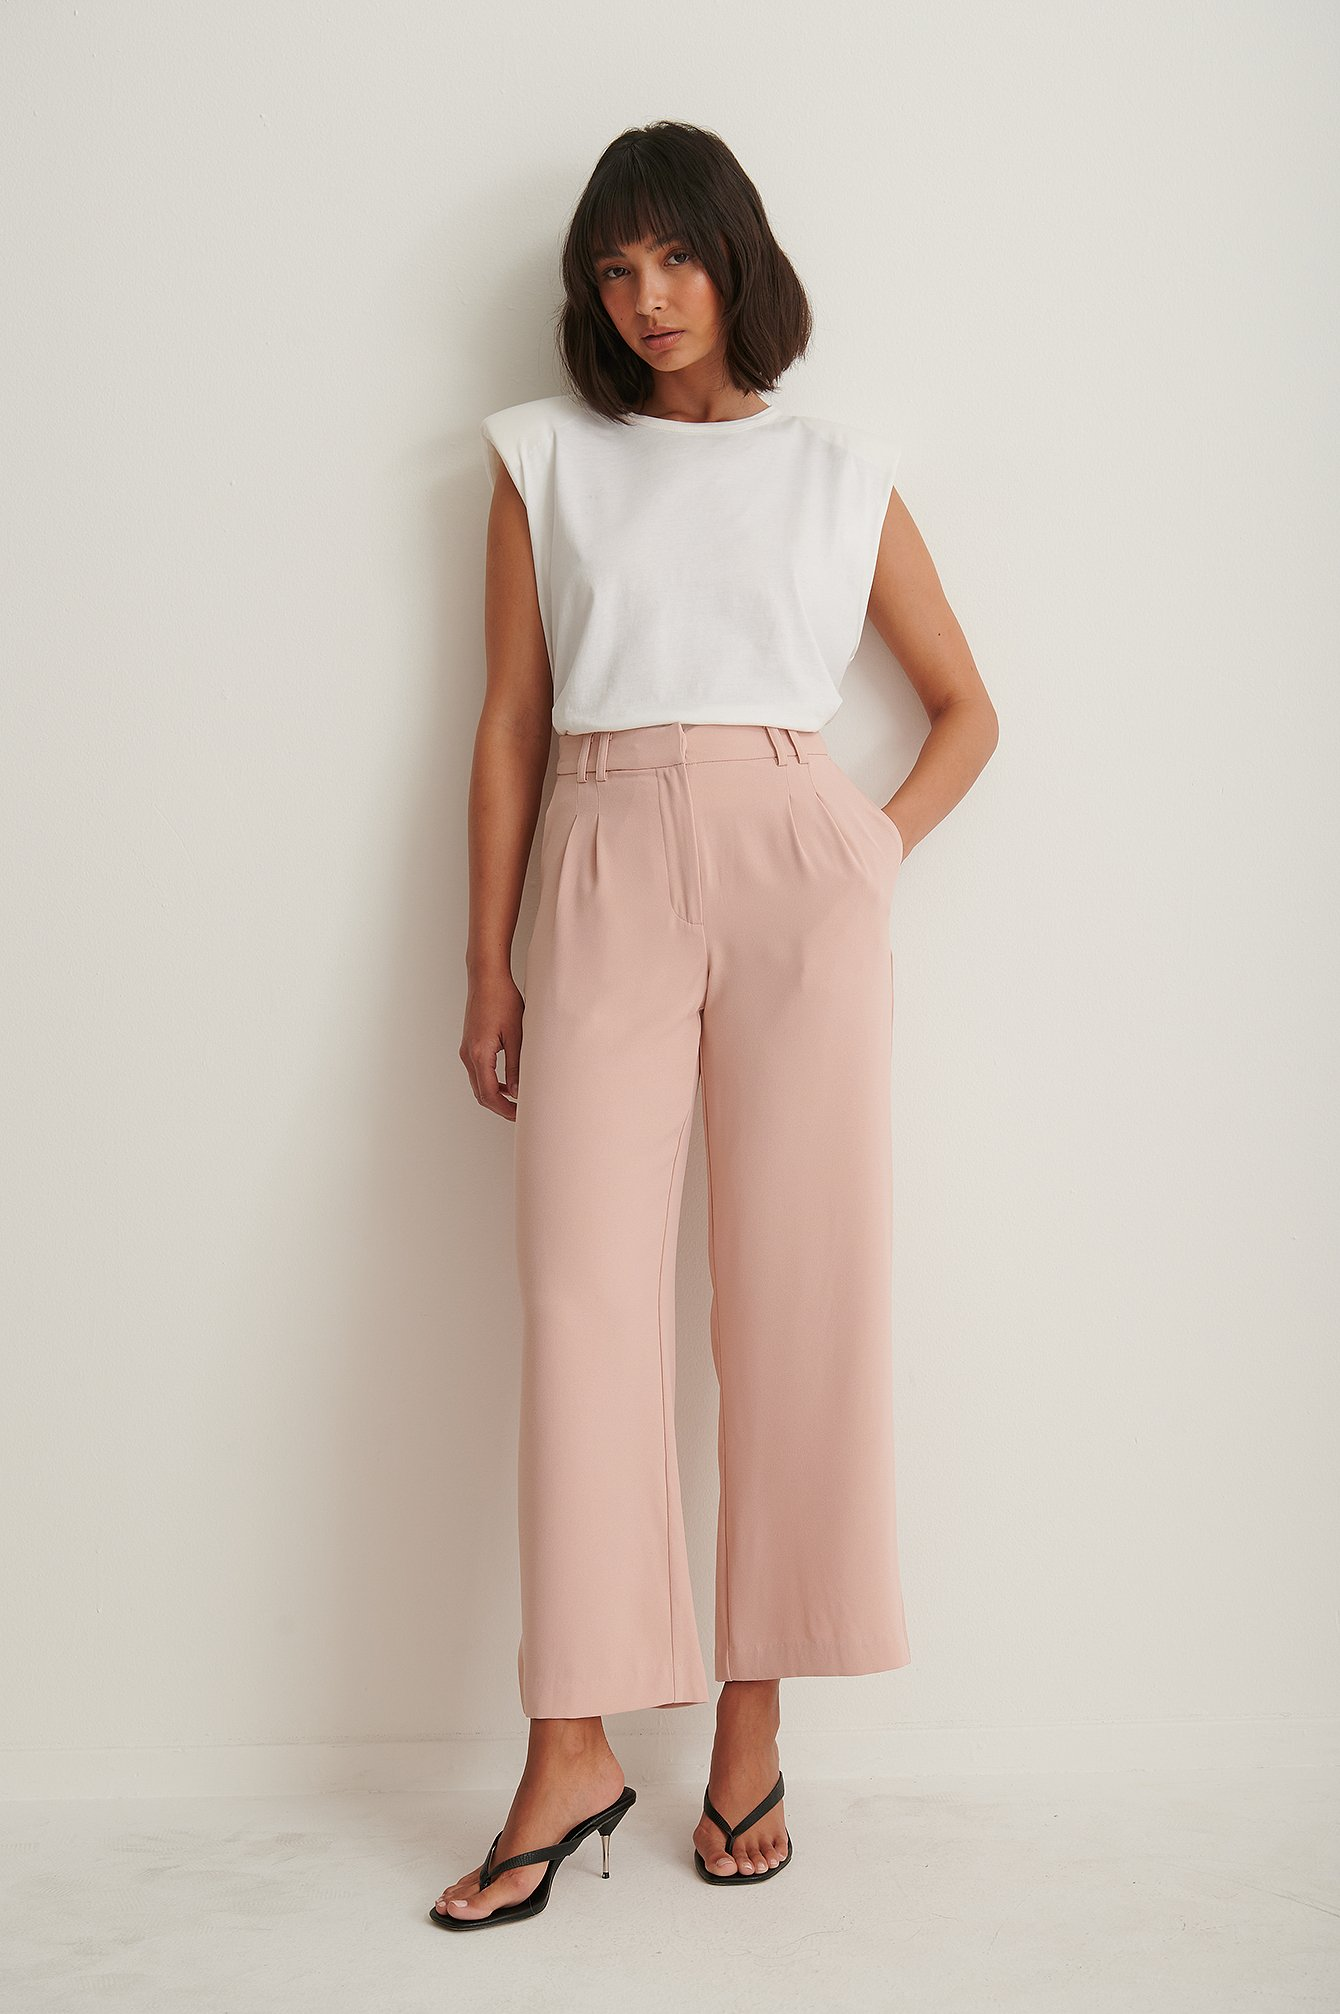 Elastic Waist Loose Fit Pants Outfit.